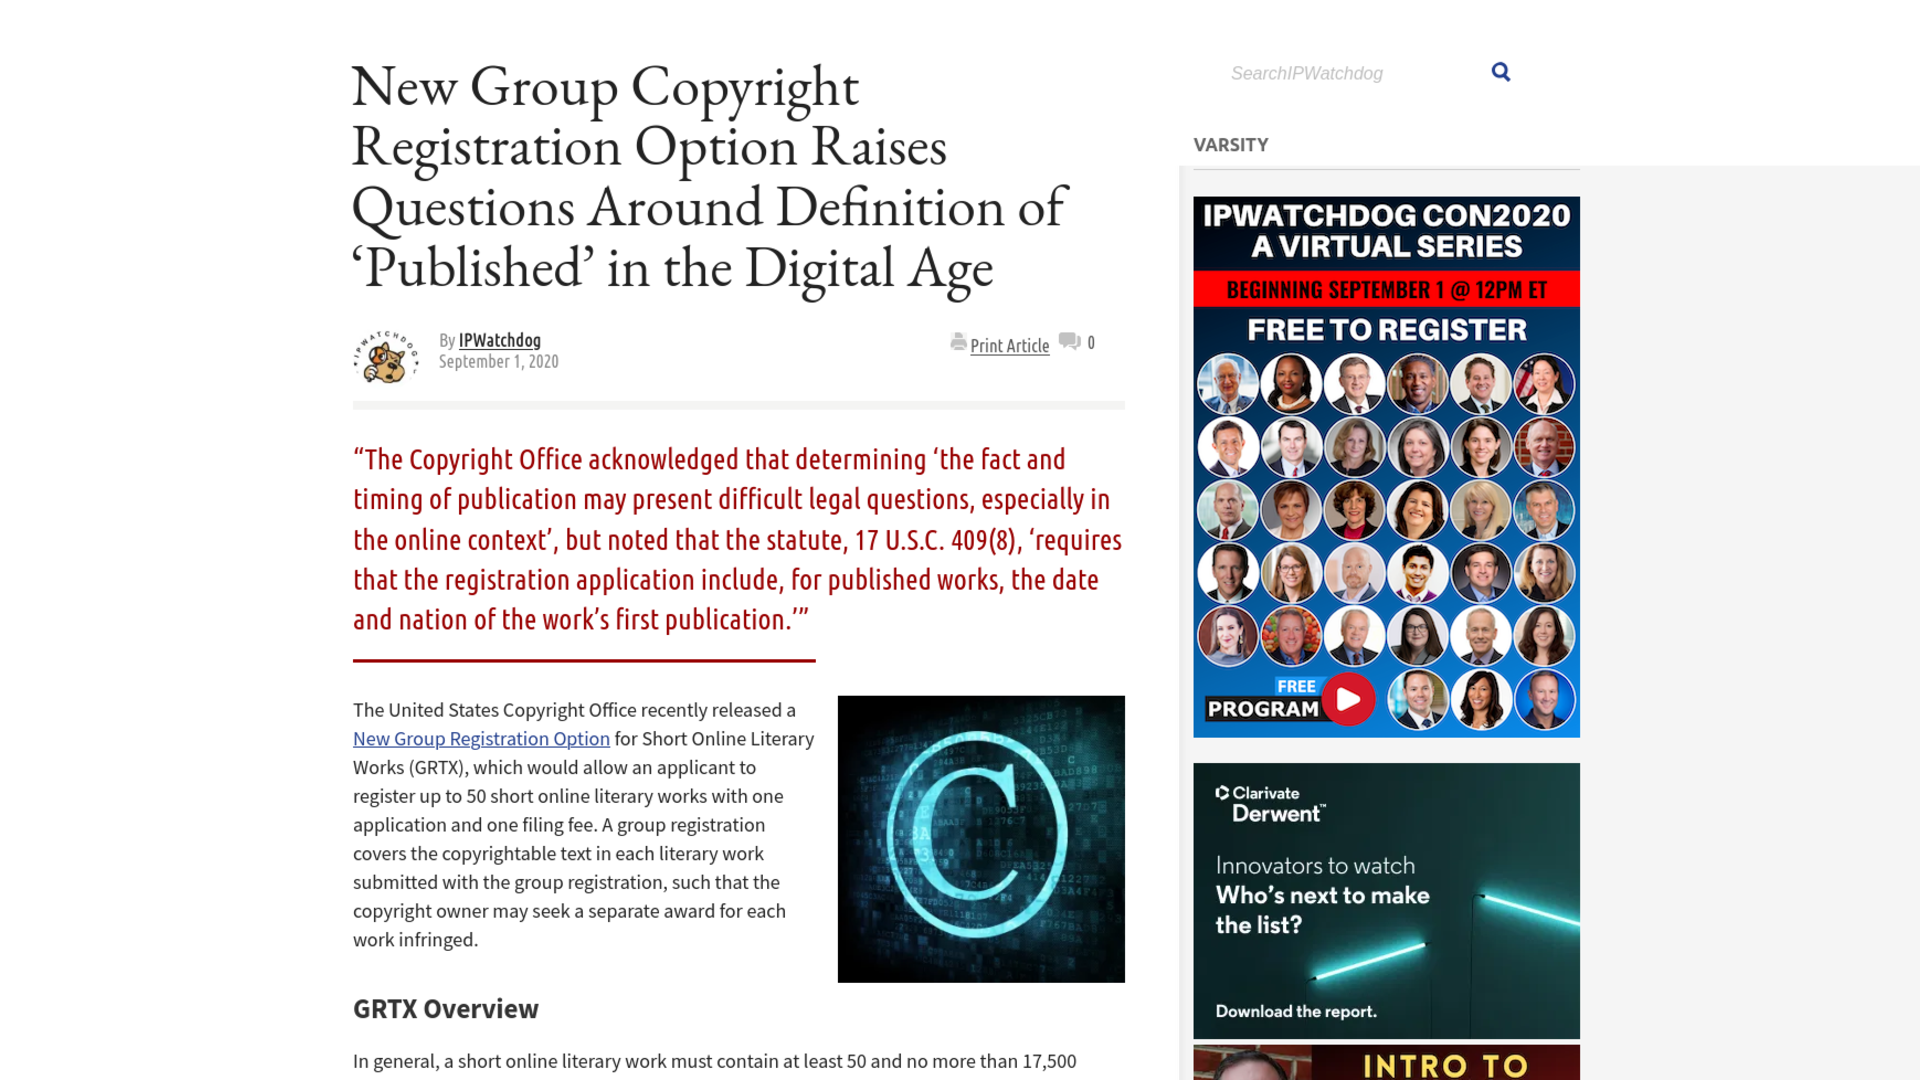 Fairness Rocks News New Group Copyright Registration Option Raises Questions Around Definition of 'Published' in the Digital Age